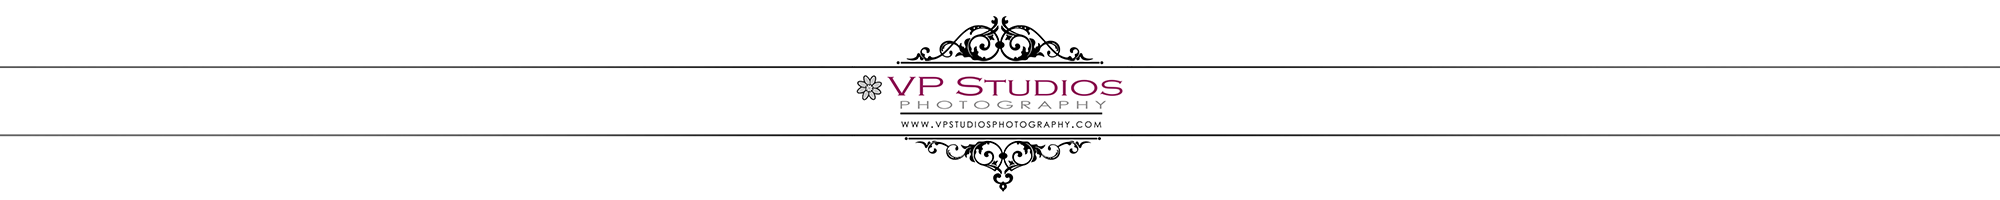 VP-Studios-Photography-1